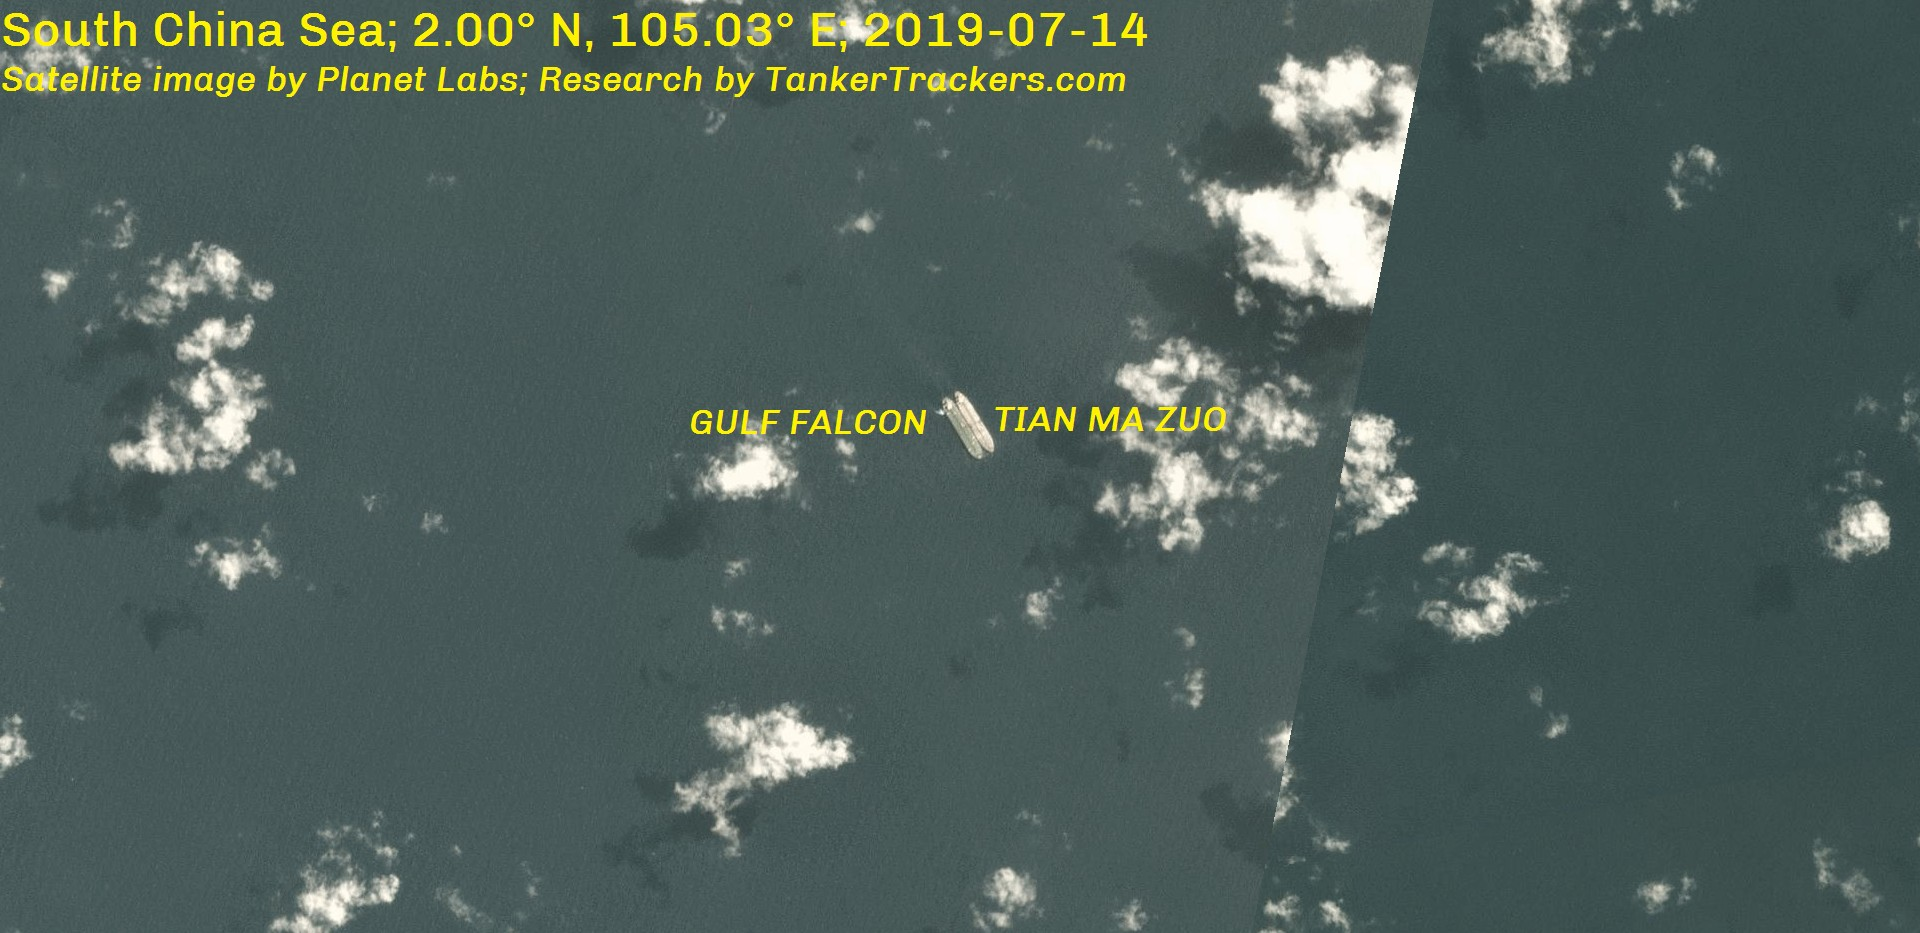 2019-07-14-TIAN-MA-ZUO-STS-with-GULF-FALCON-in-South-China-Sea